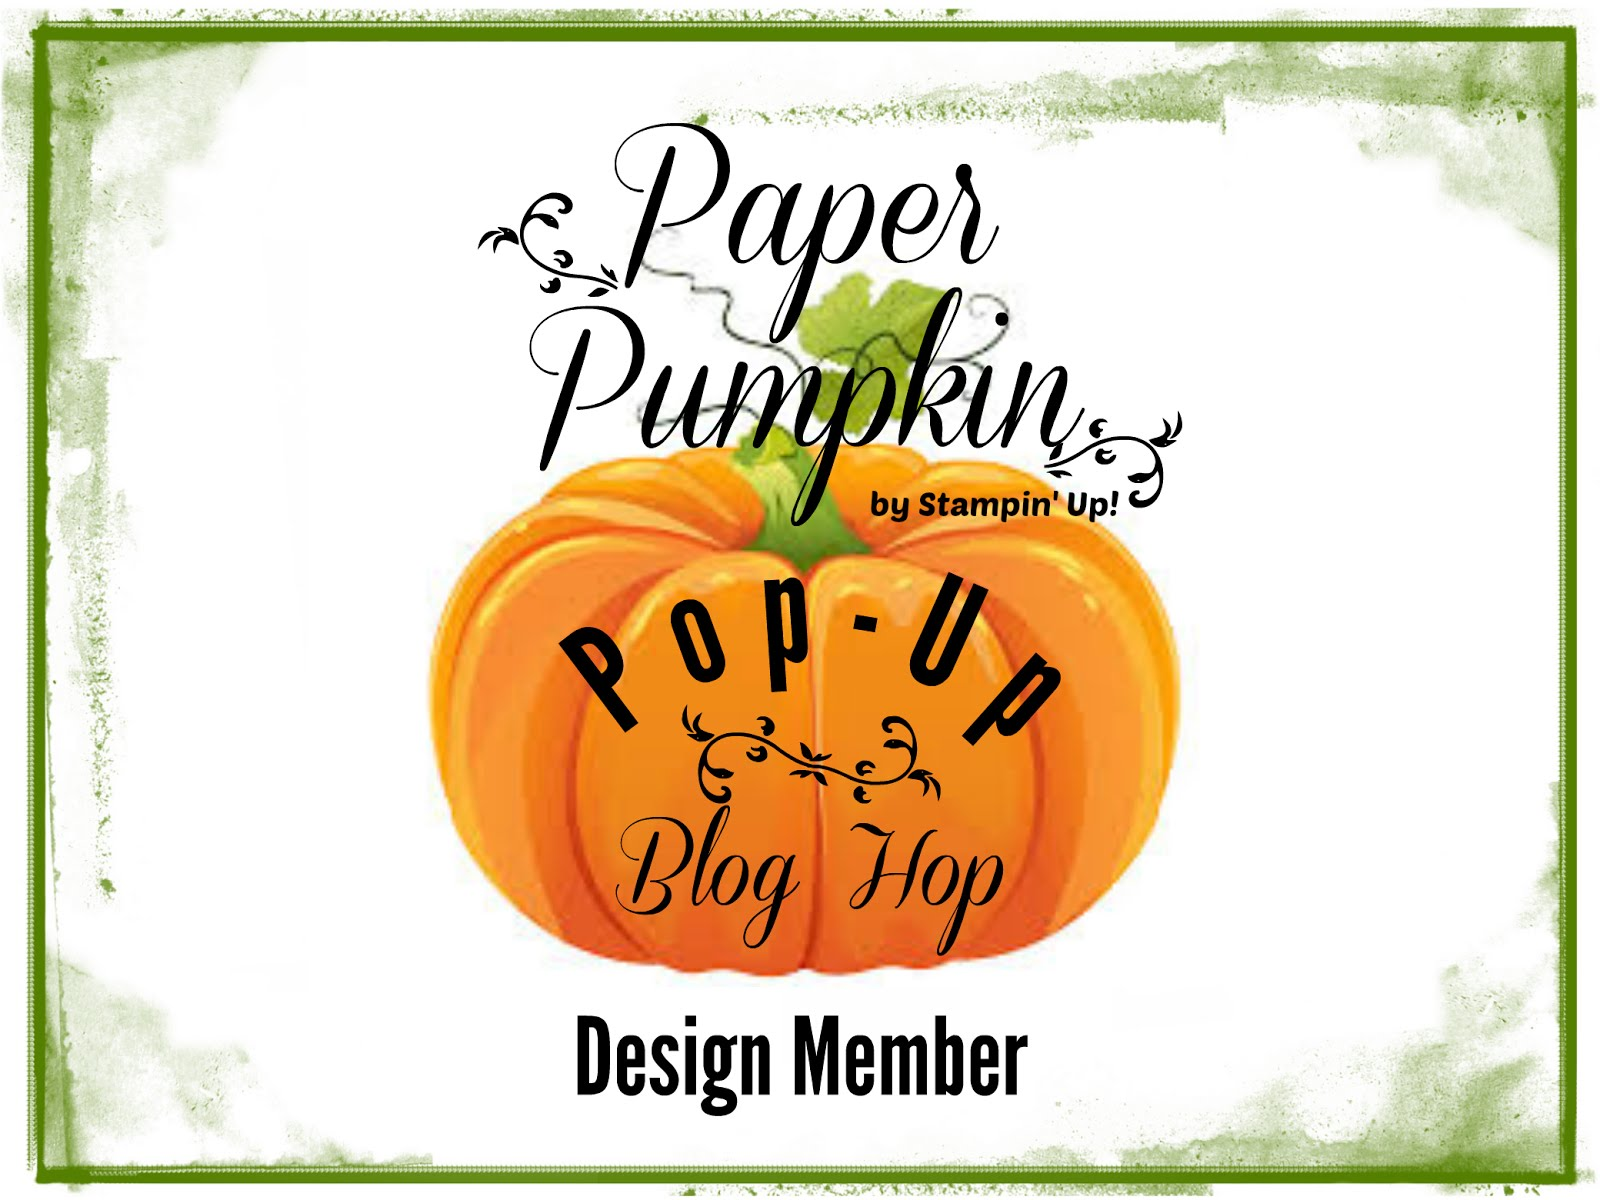 Paper Pumpkin Pop Up Blog Hop Designer